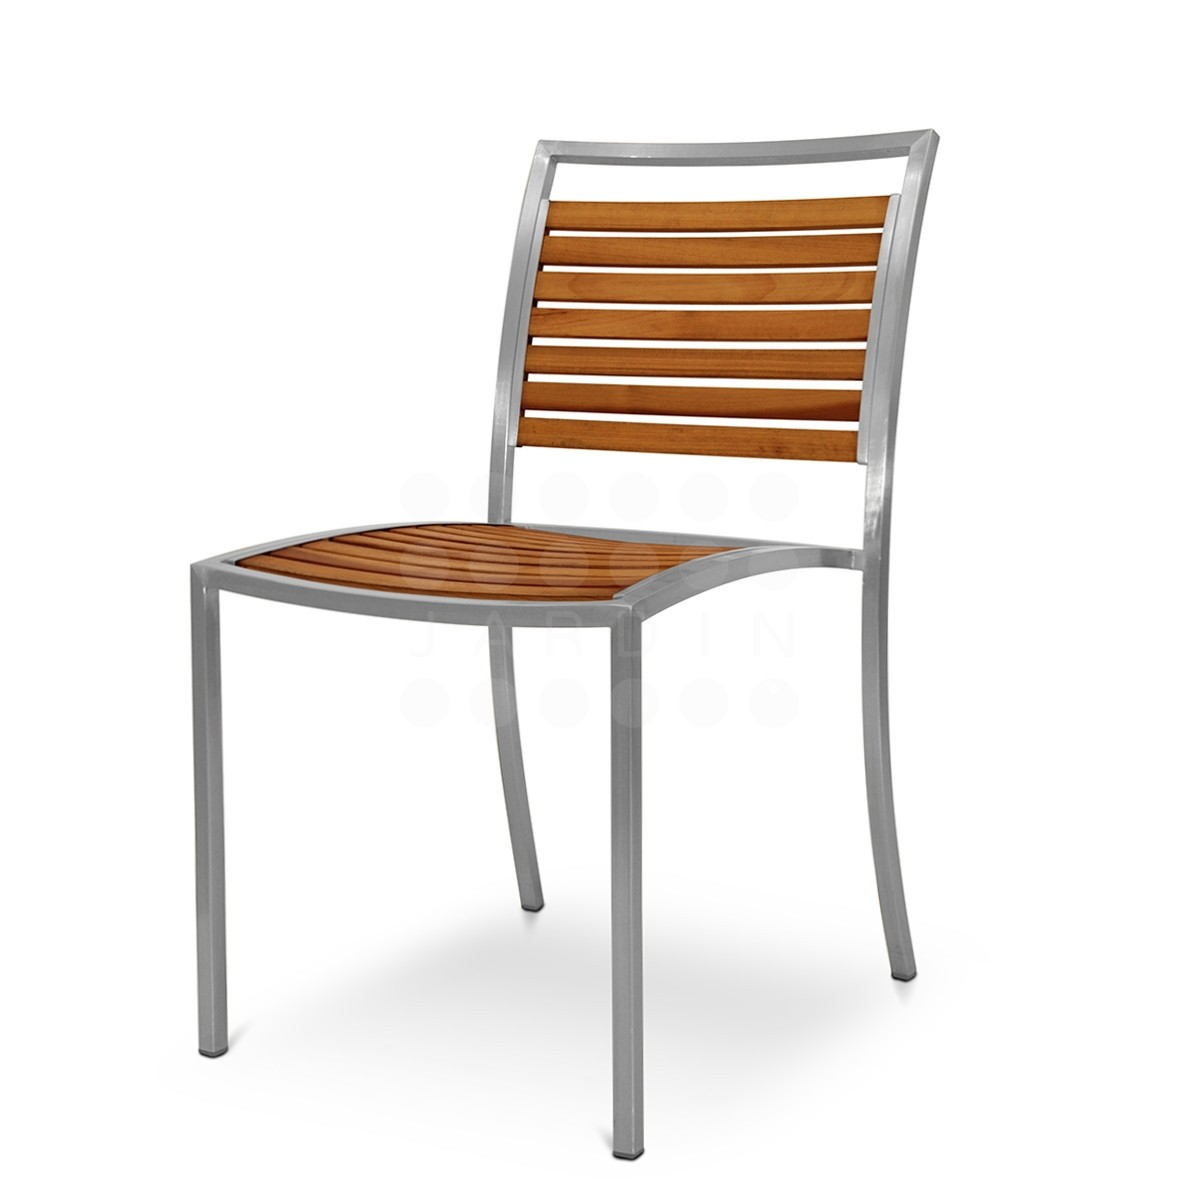 Chair from the evolve teak amp stainless range of outdoor furniture